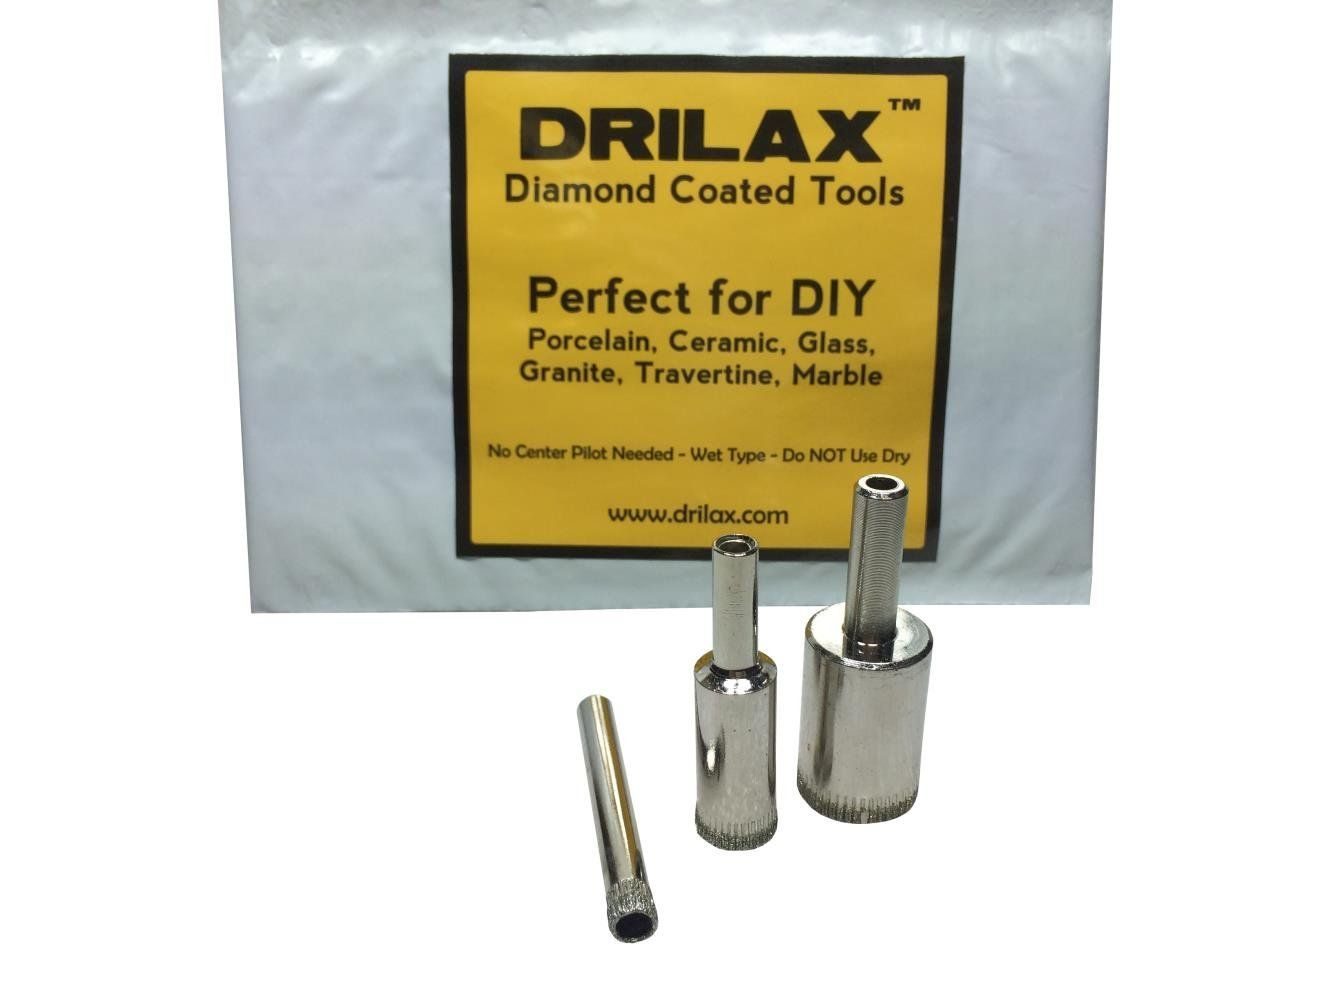 Drilax 3 Pcs Diamond Drill Bit Set 1 4 1 2 3 4 For Tiles Glass Fish Tanks Marble Granite Ceramic Porcelain Glass Fish Tanks Bottle Lamp Granite